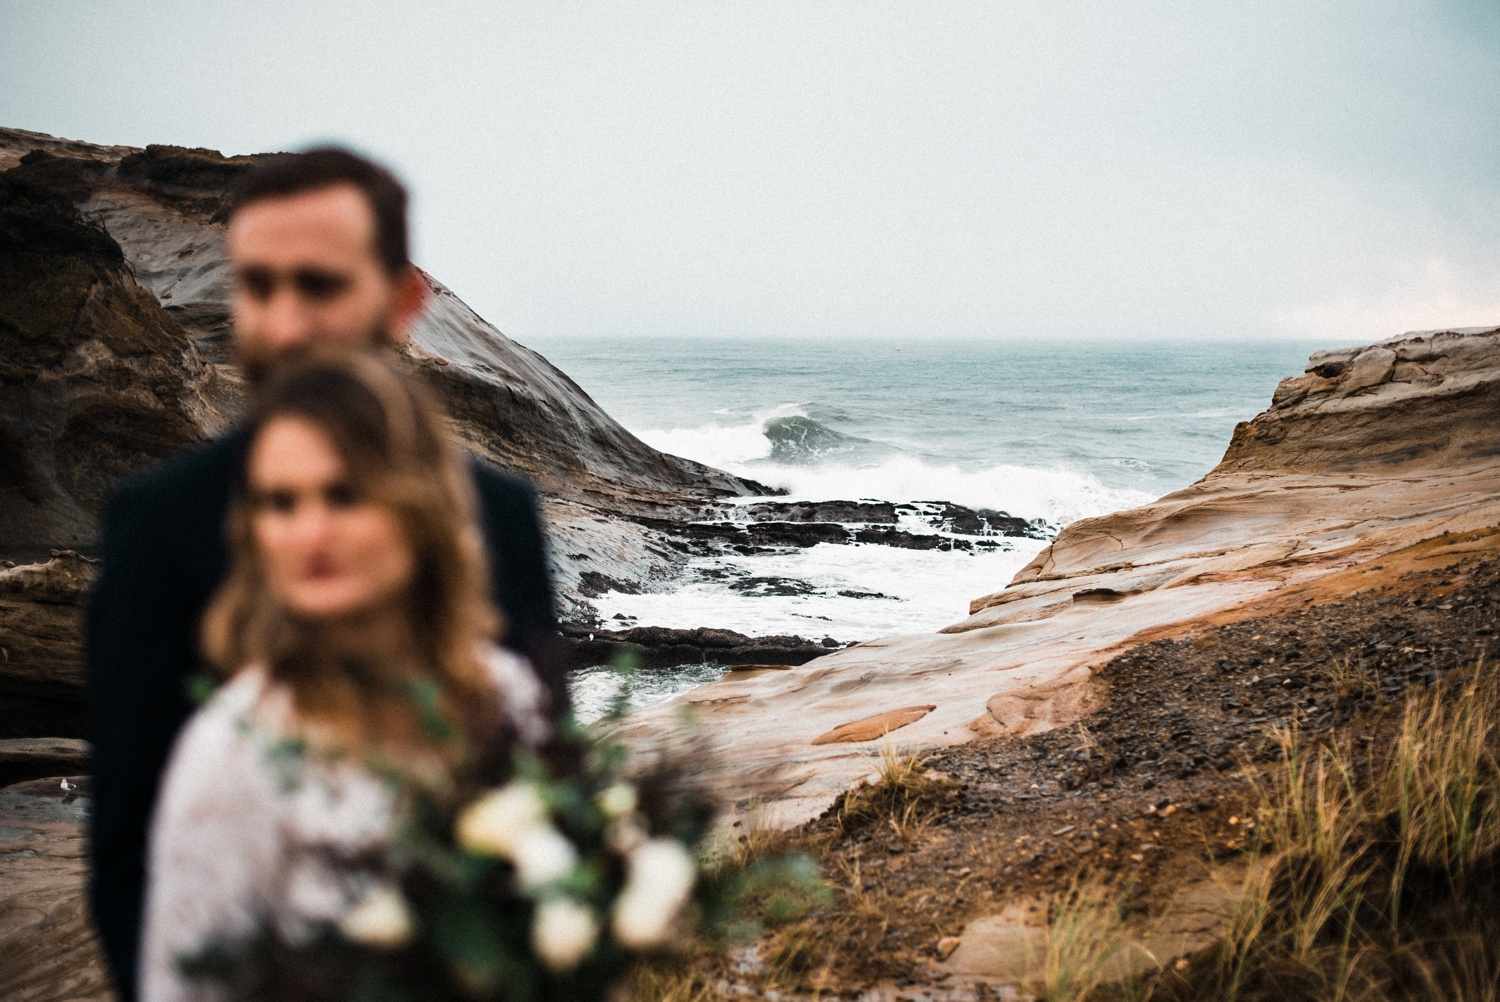 Oregon_Coast_Elopement_Wedding_The_Foxes_Photography_125.jpg